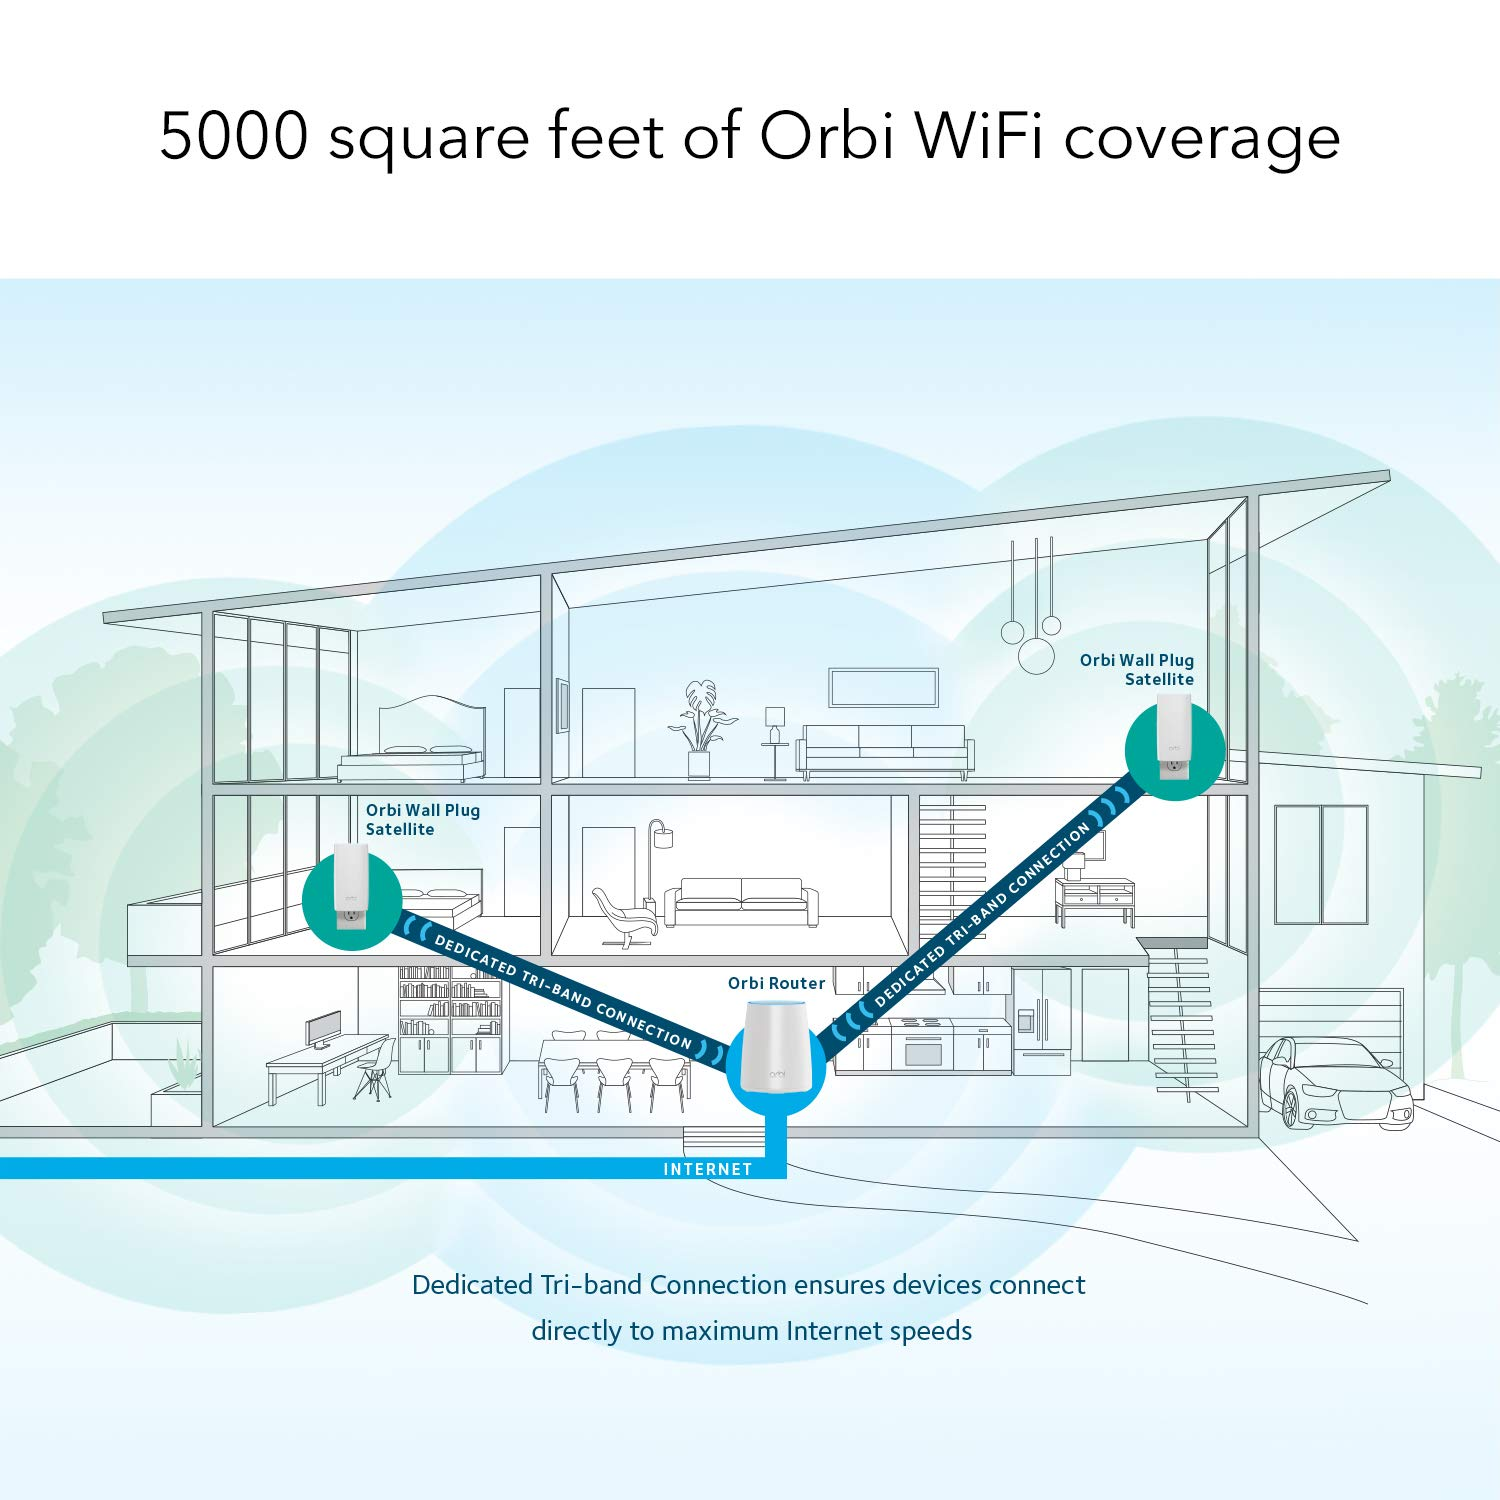 Netgear Orbi Wall Plug Whole Home Mesh Wifi System As Basic Electrical Outlet Wiring Furthermore Multiple Router And 2 Satellite Extenders With Speeds Up To 22 Gbps Over 5000 Sq